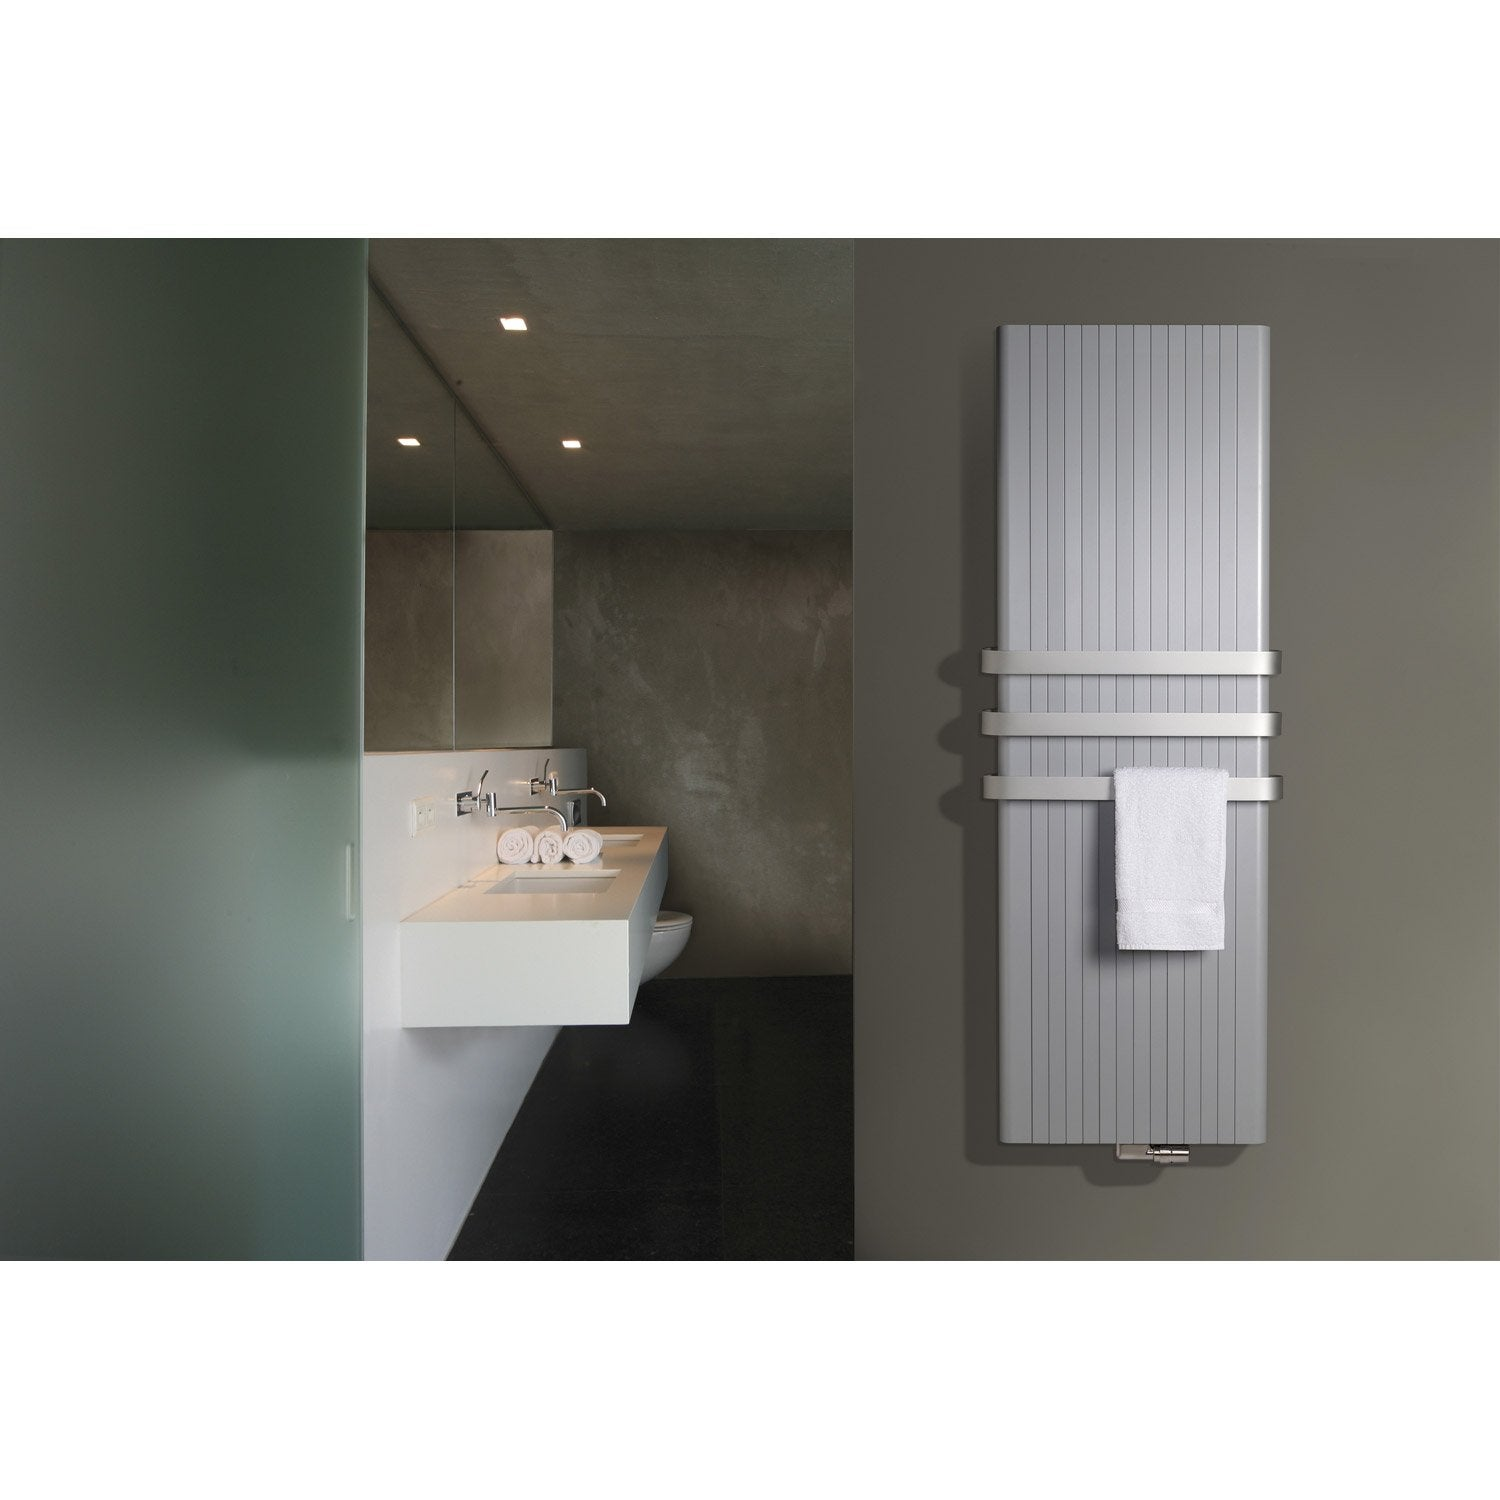 radiateur chauffage central aluzen blanc cm 2046 w leroy merlin. Black Bedroom Furniture Sets. Home Design Ideas